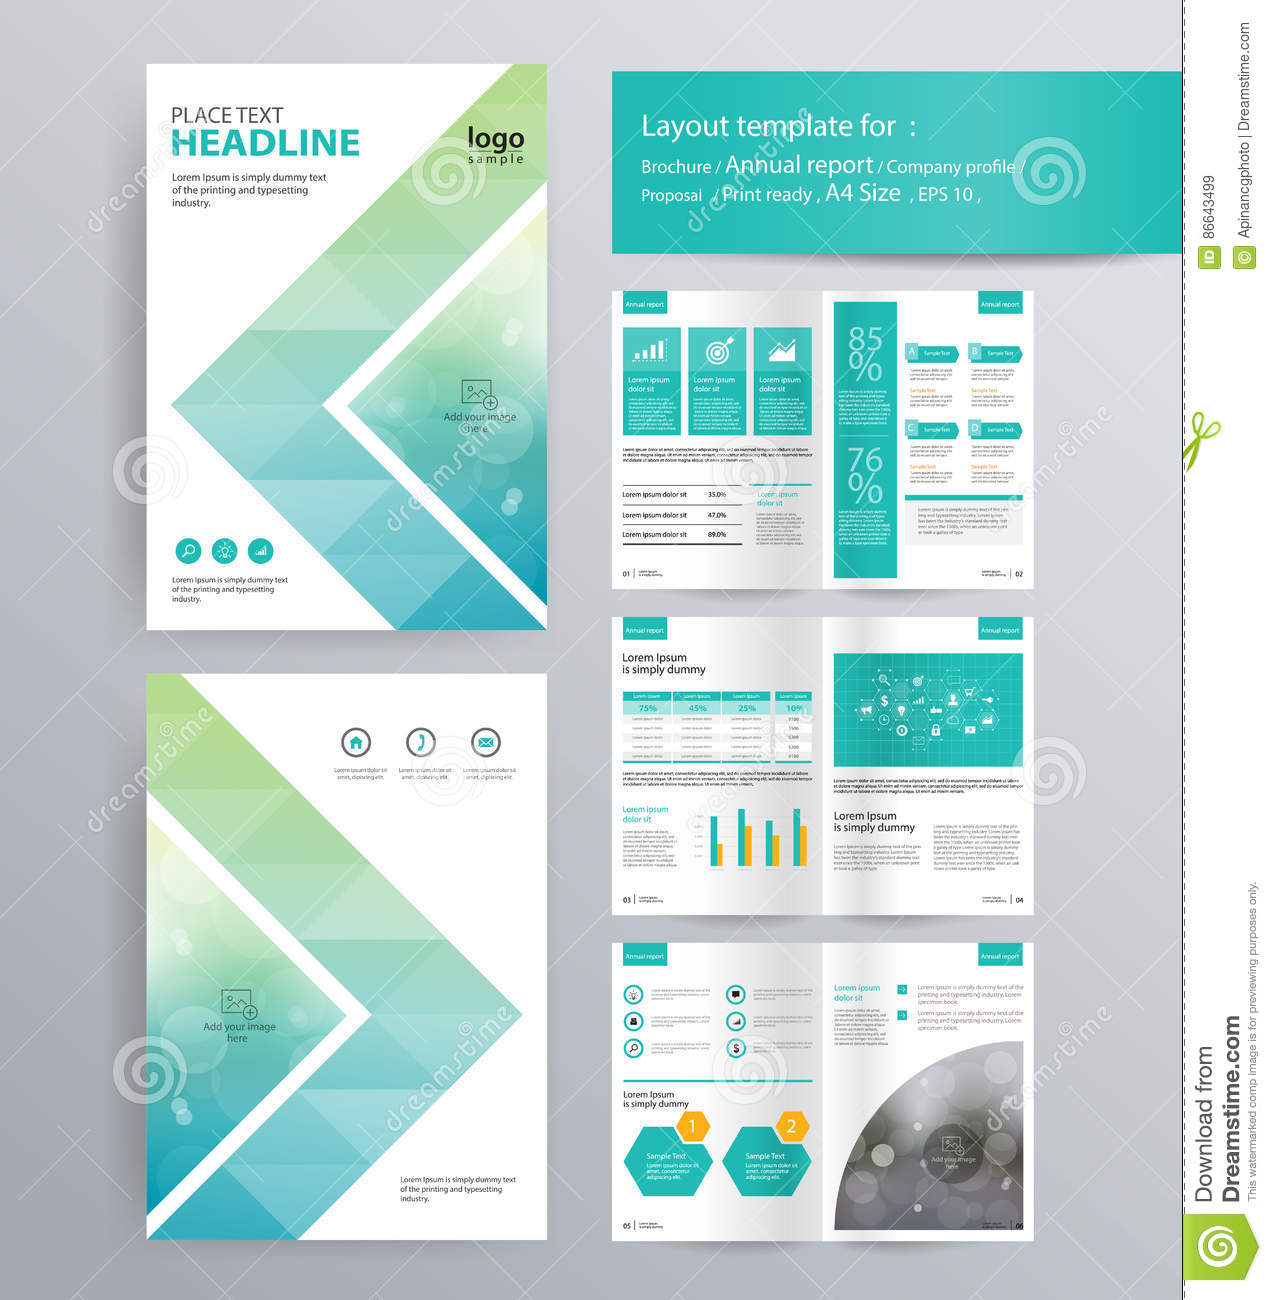 Page Layout For Company Profile Annual Report And Brochure - Company profile brochure template